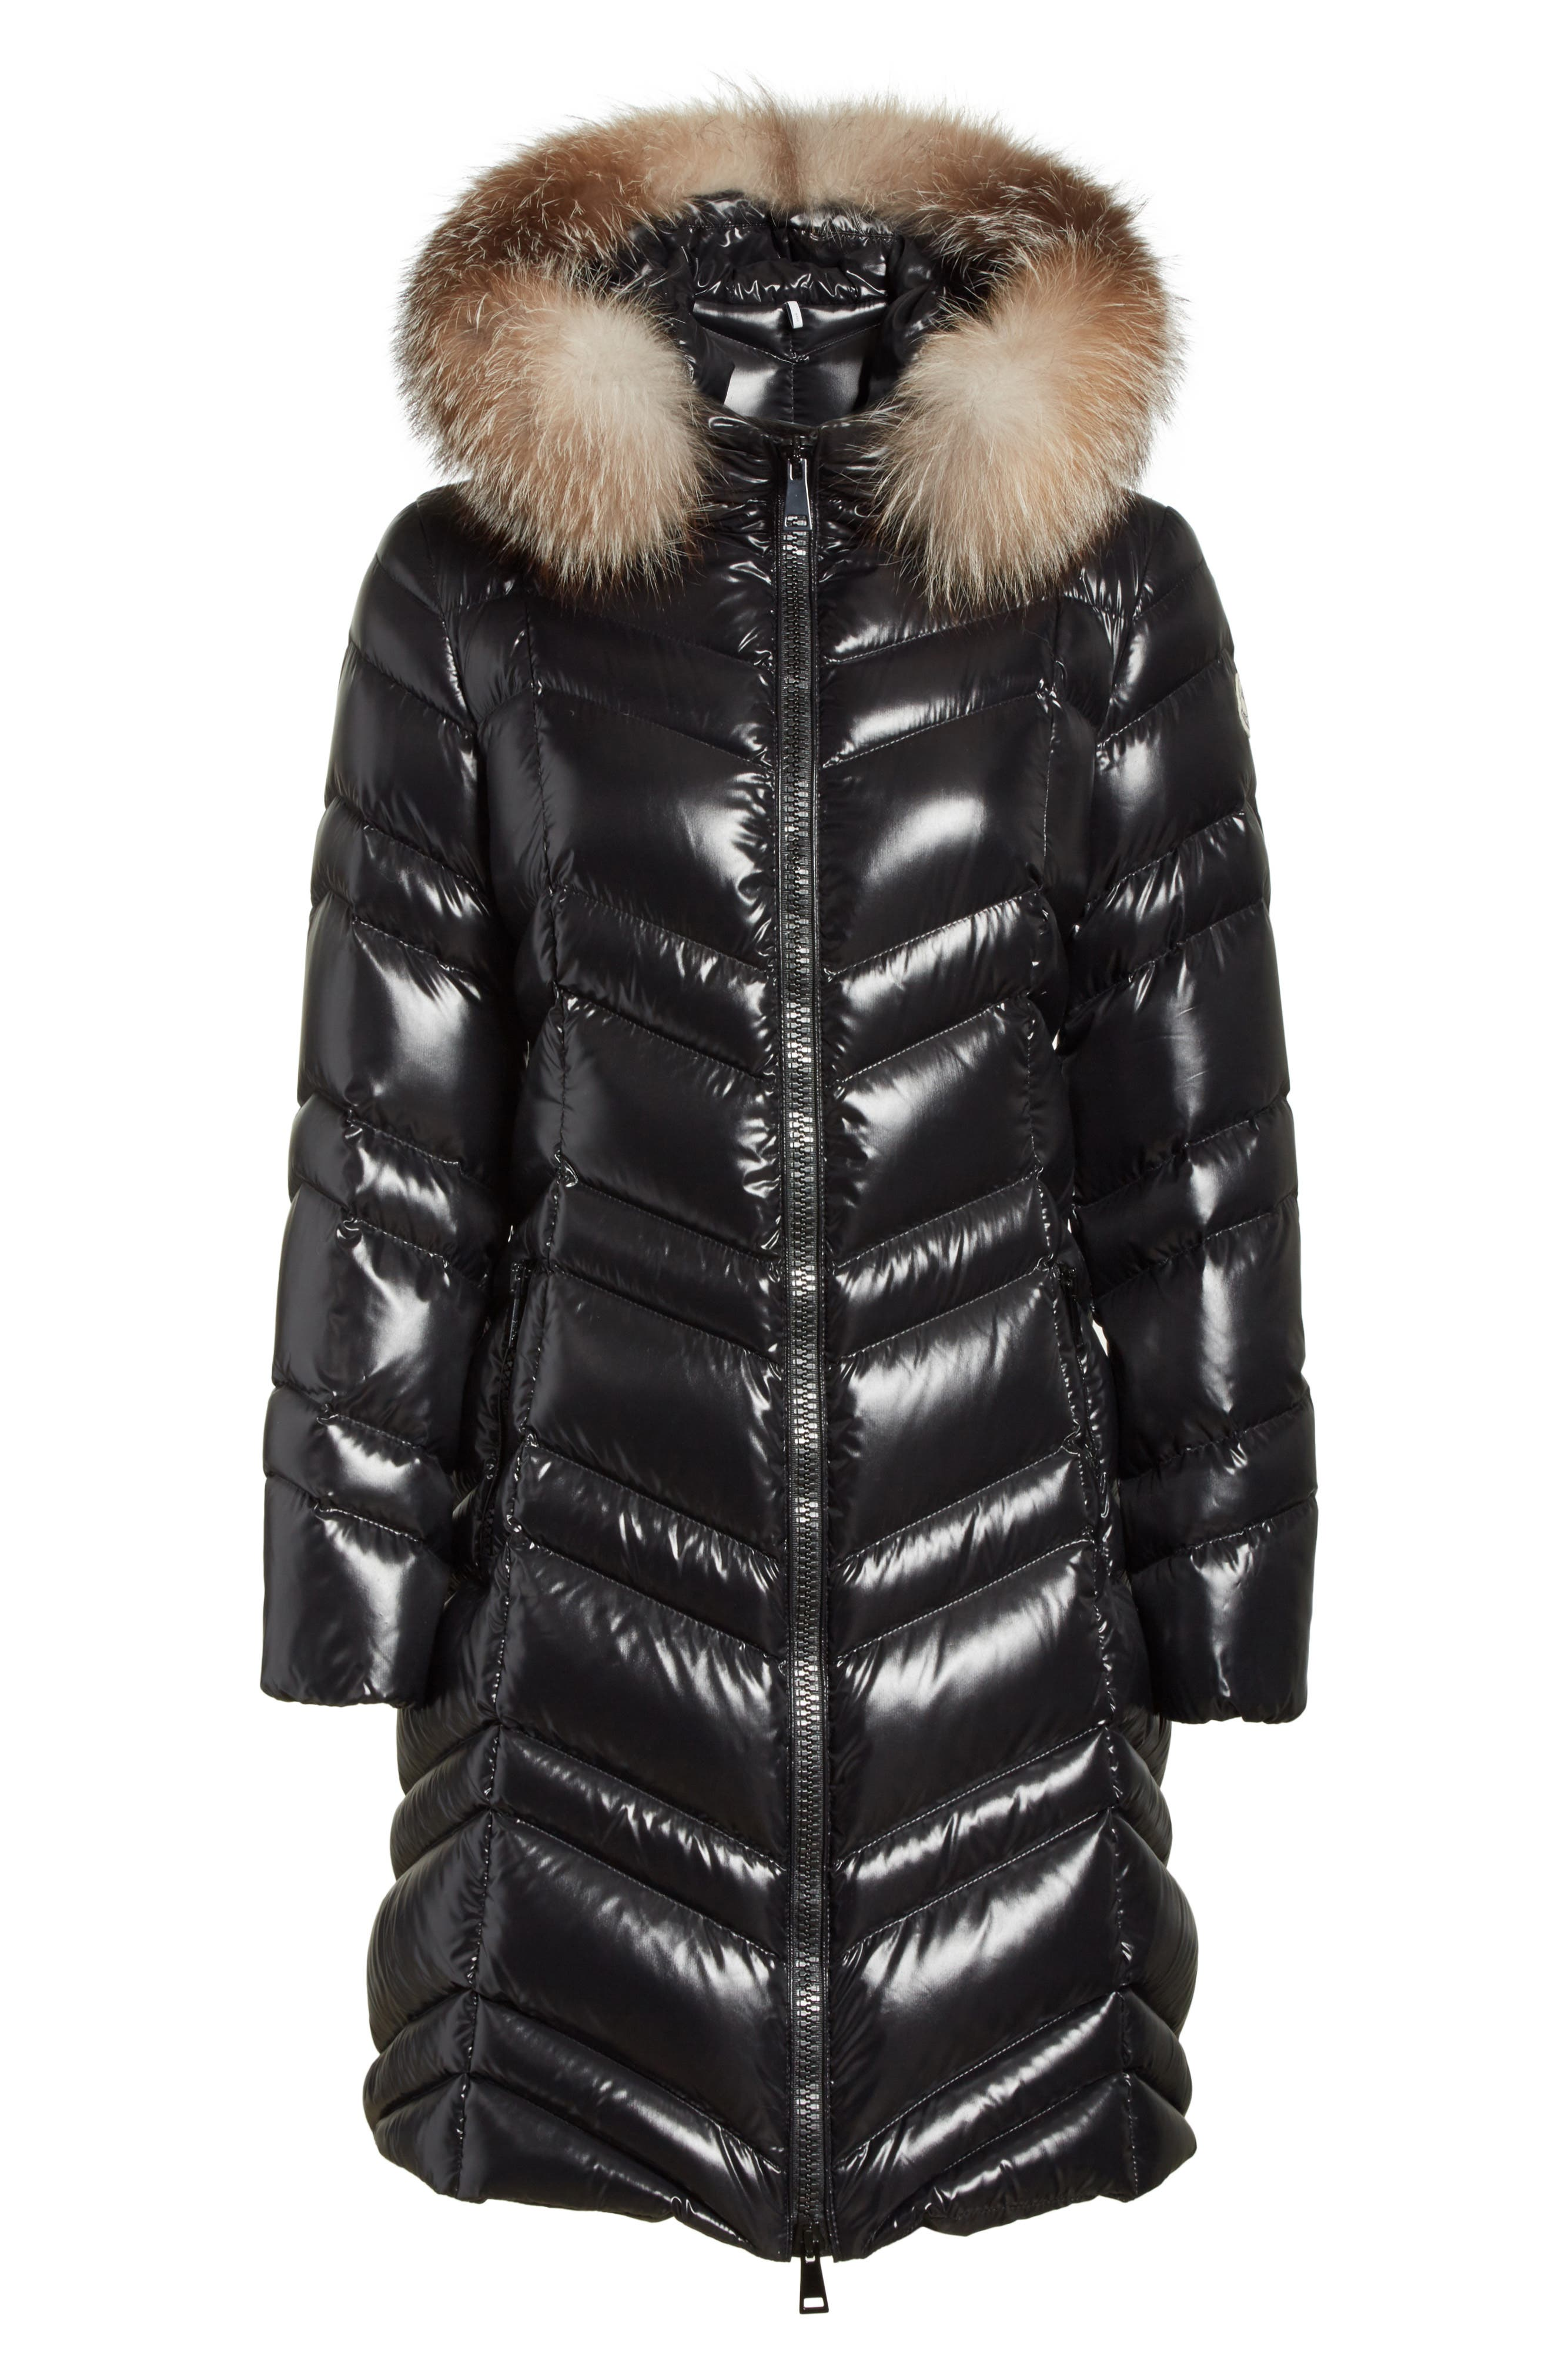 MONCLER, Fulmar Hooded Down Puffer Coat with Removable Genuine Fox Fur Trim, Alternate thumbnail 6, color, BLACK